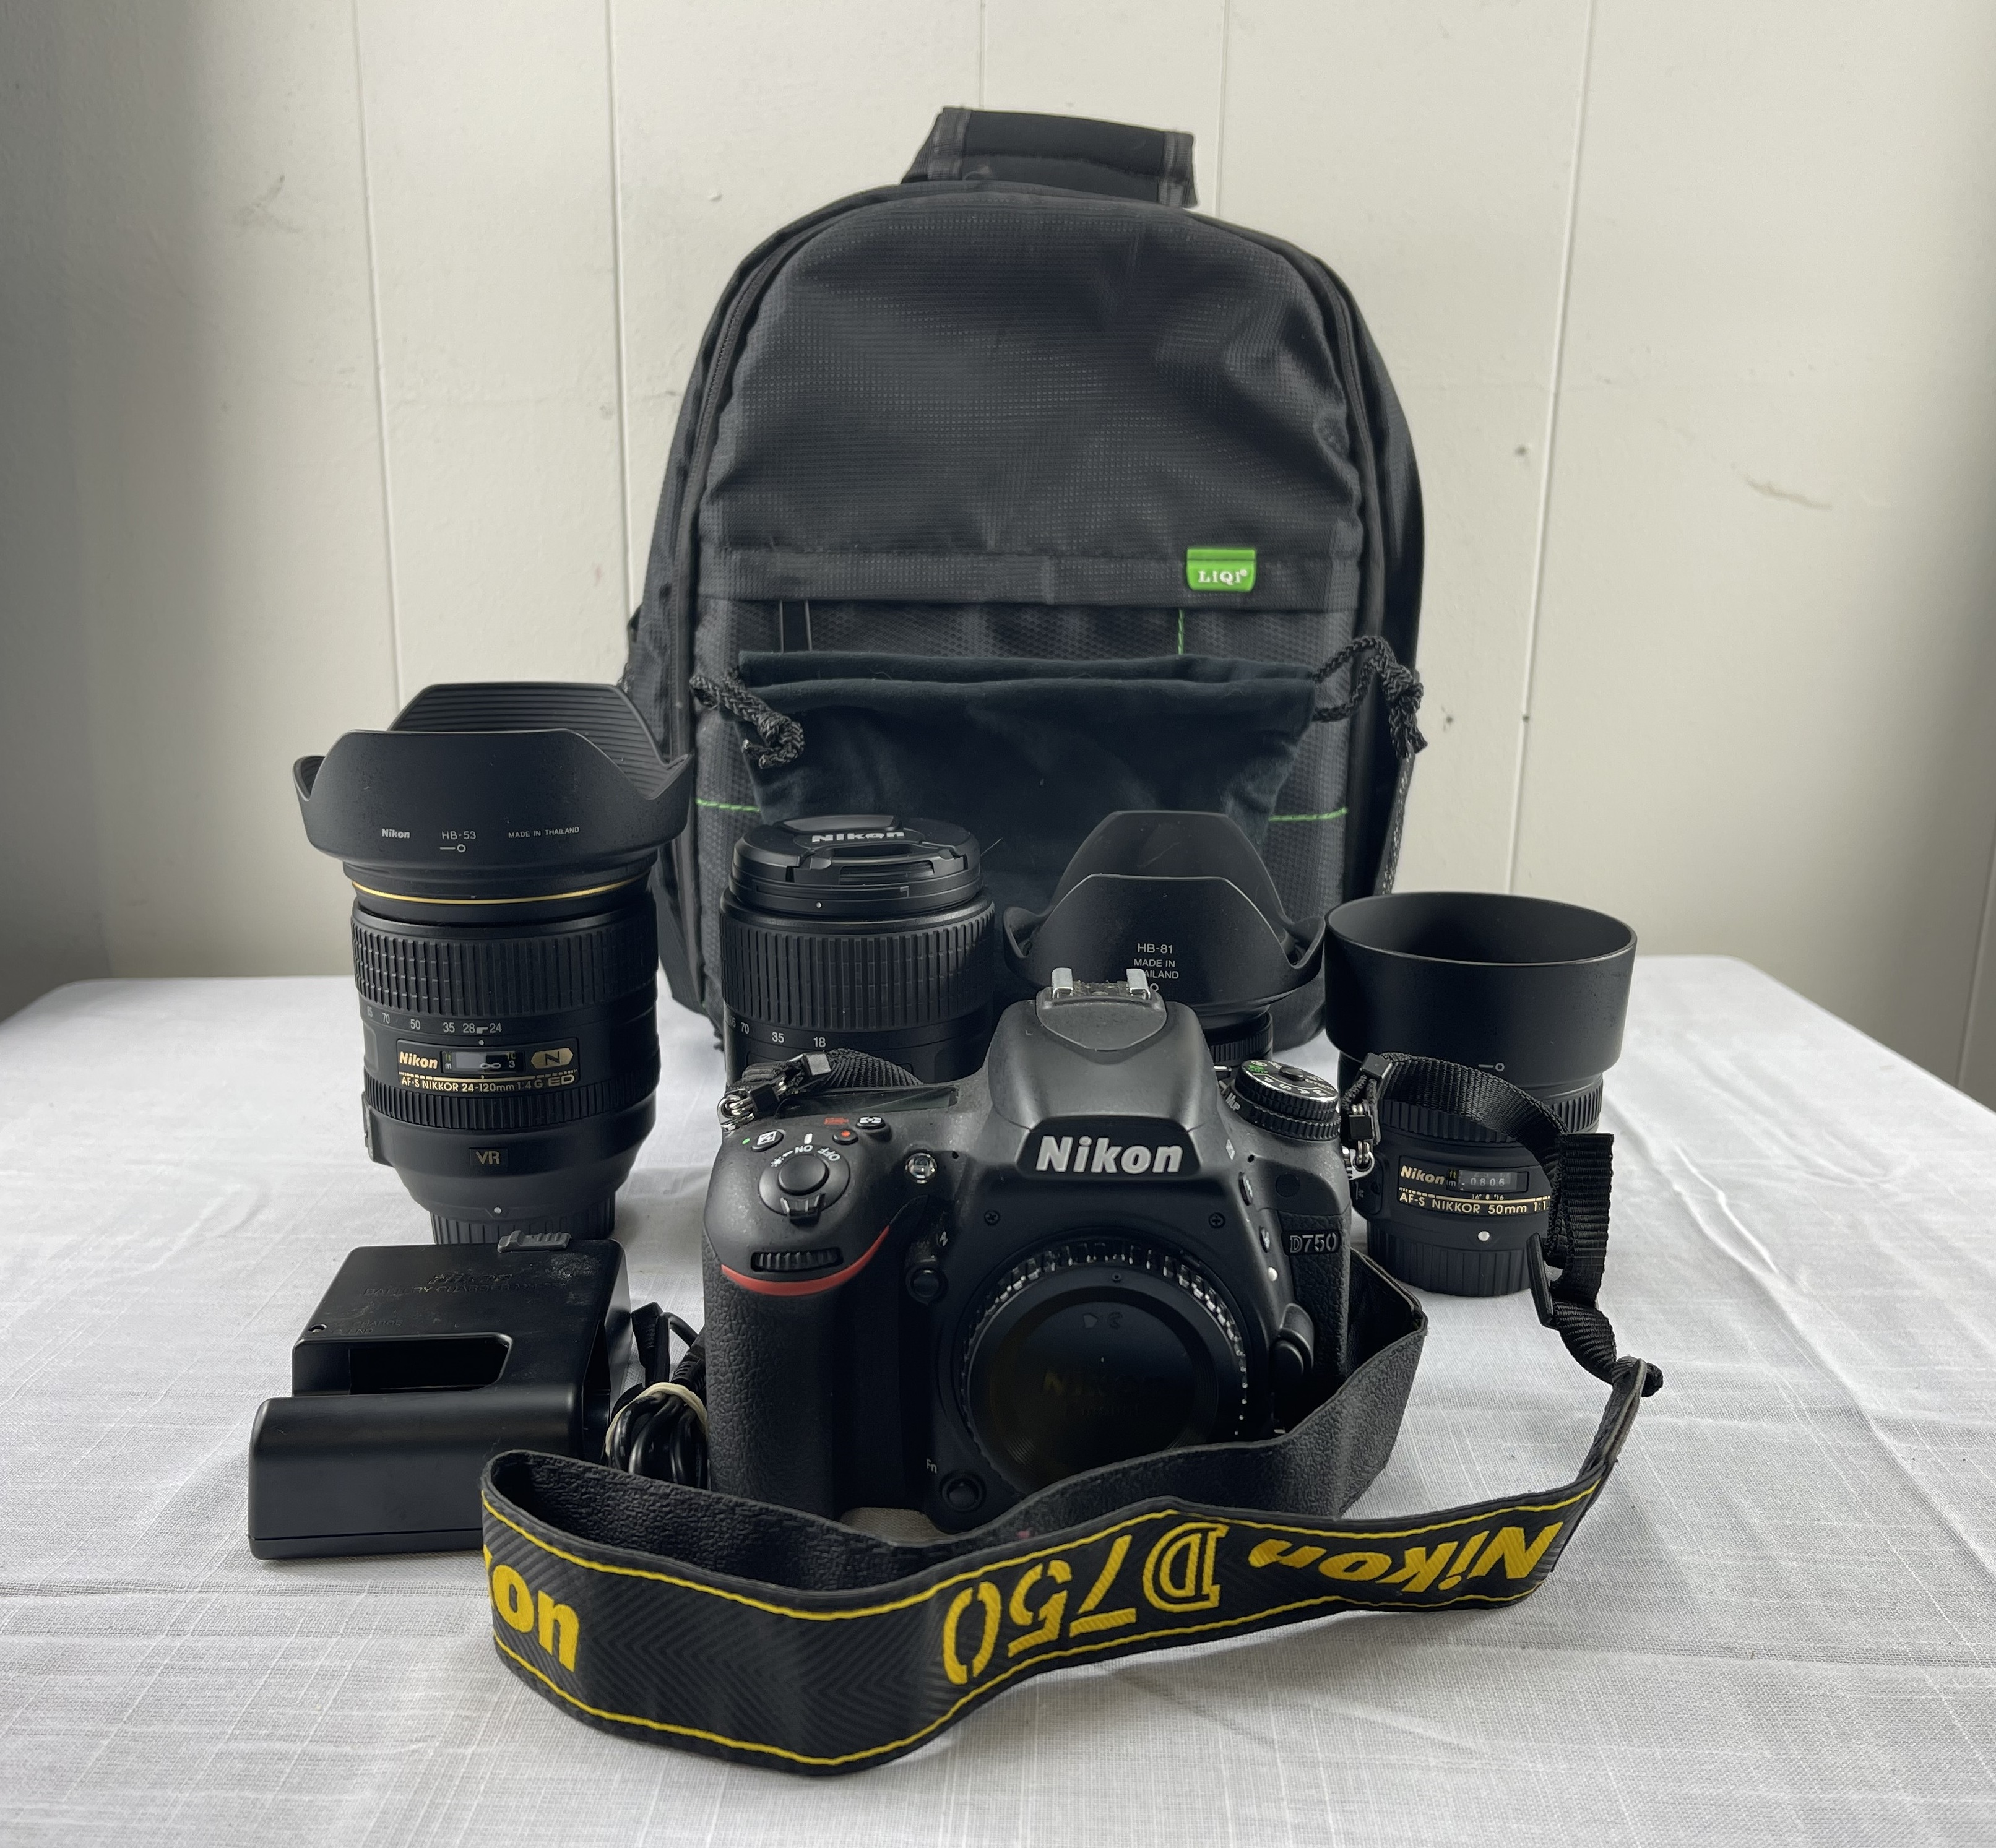 Nikon D750 24.3 MP DSLR Camera Kit w/4 Nikon Lenses - Very Low Shutter Count